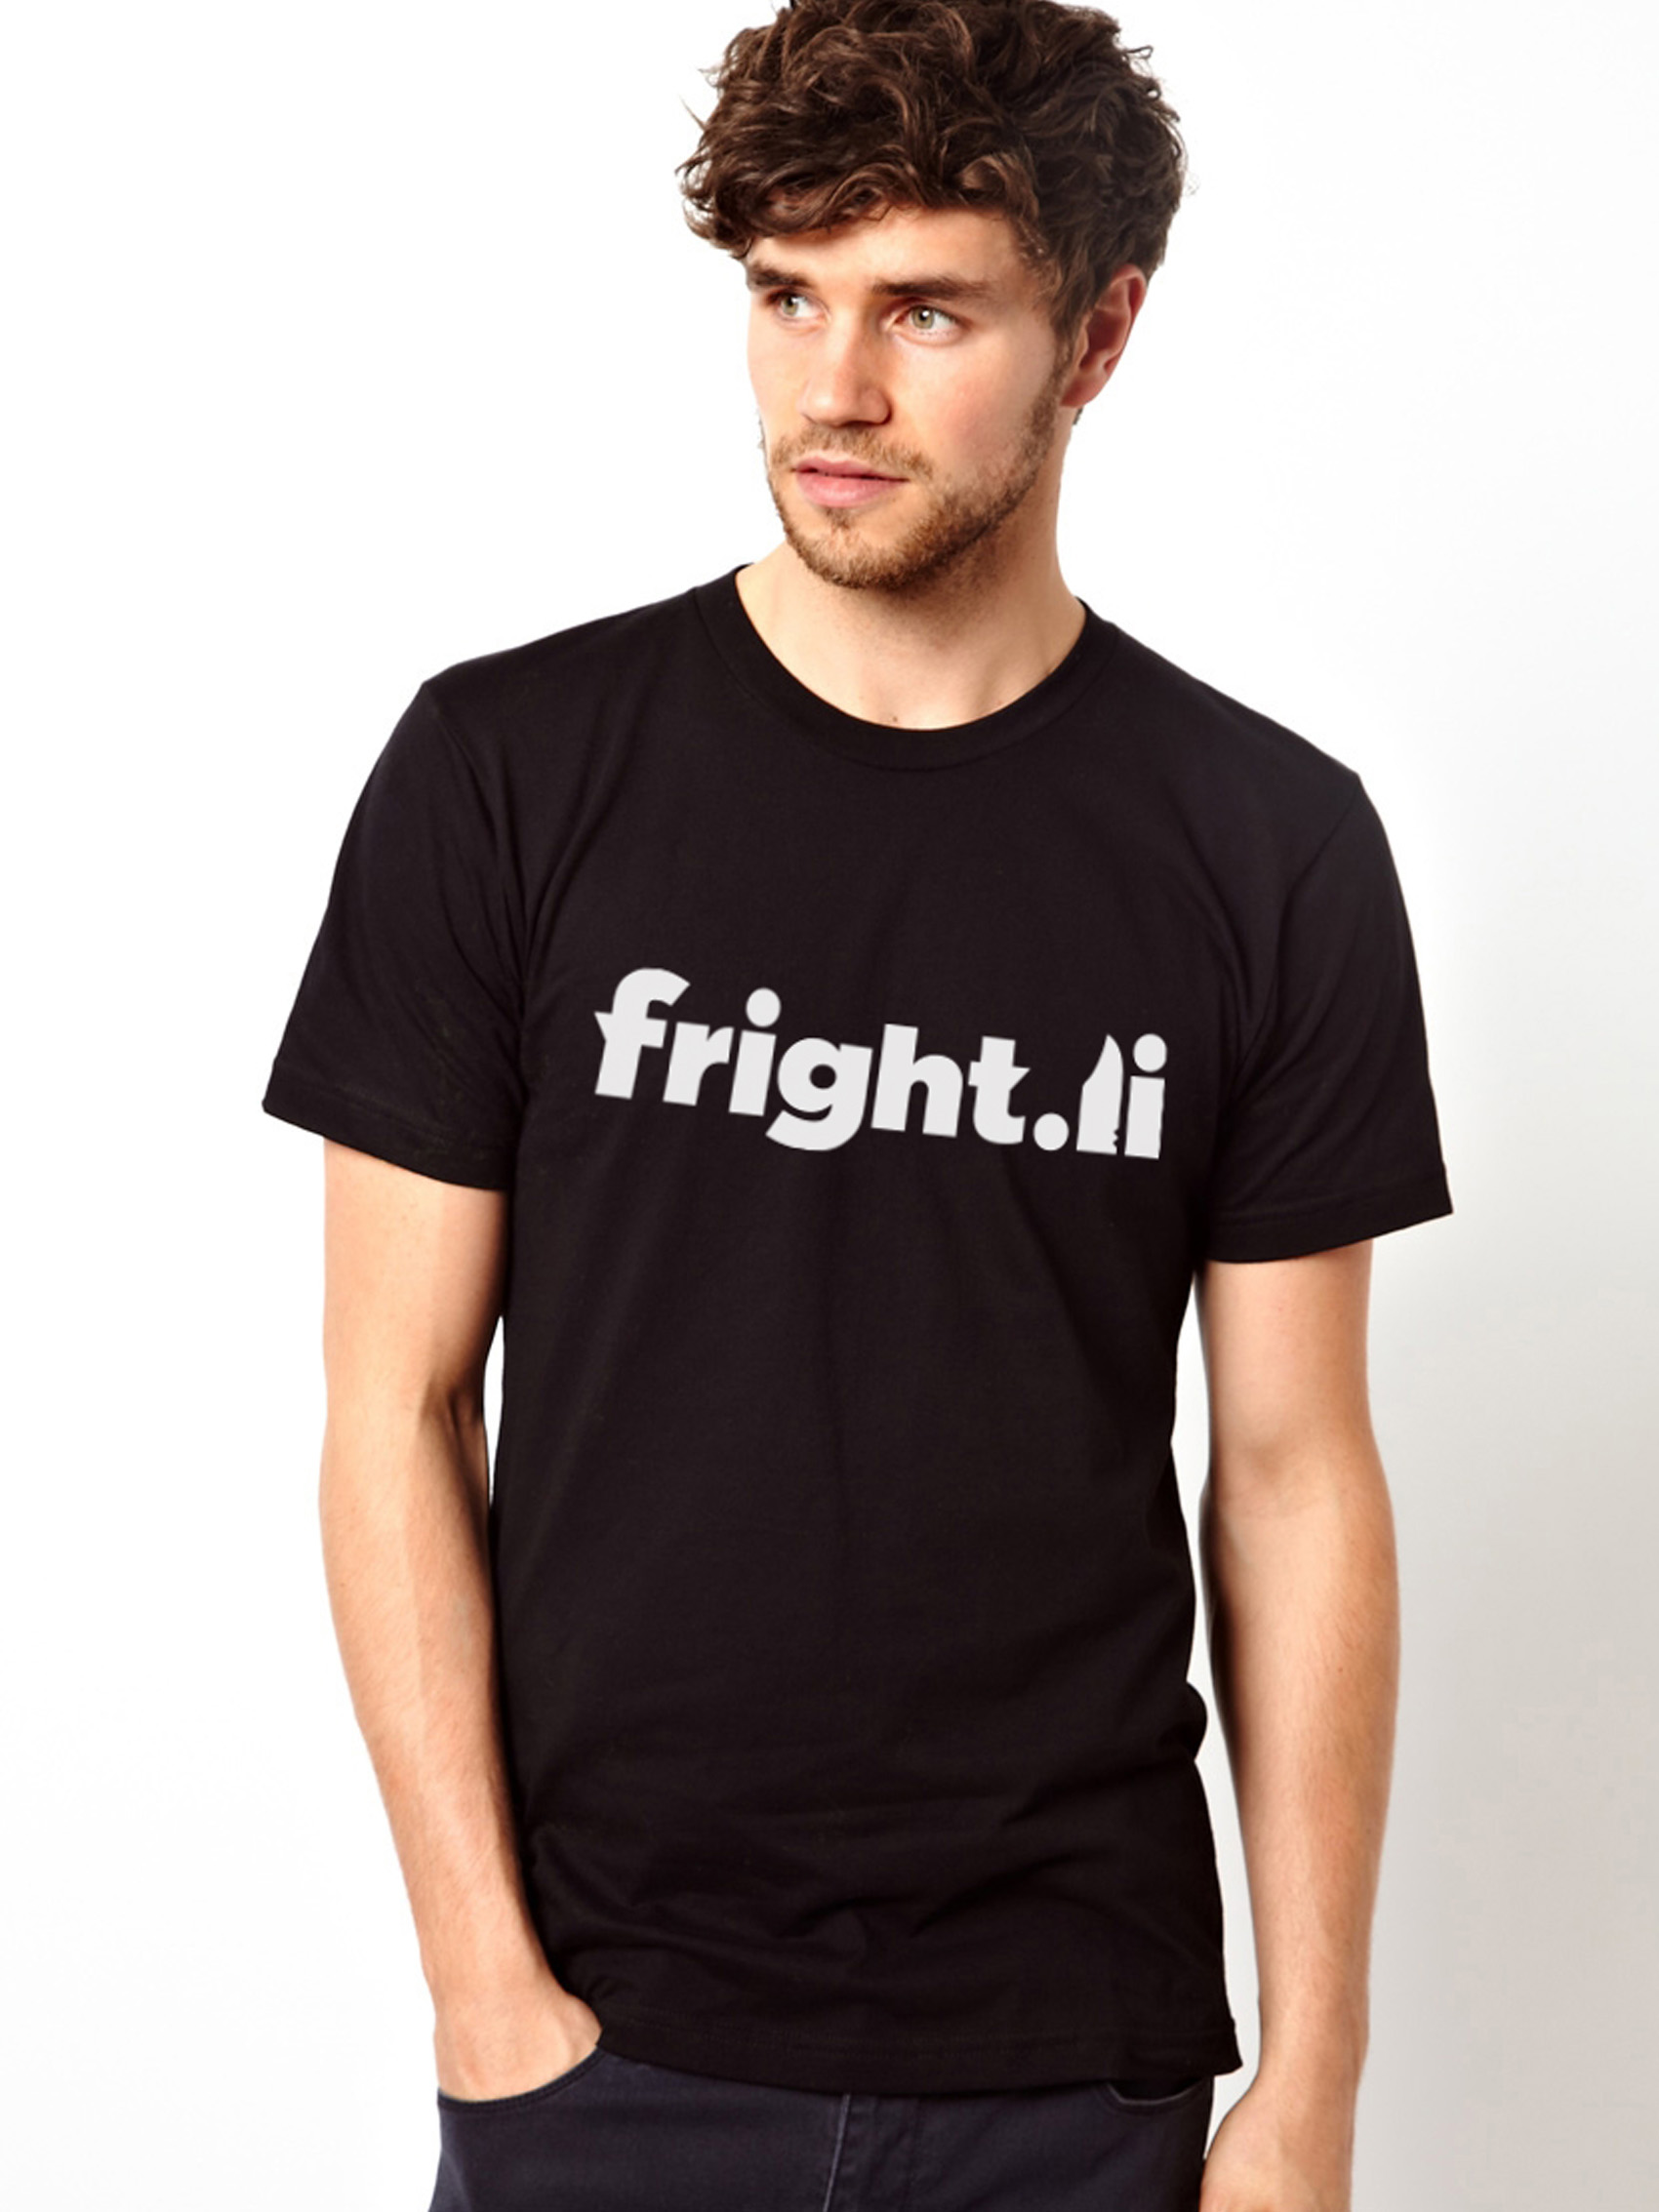 frightli-shirt